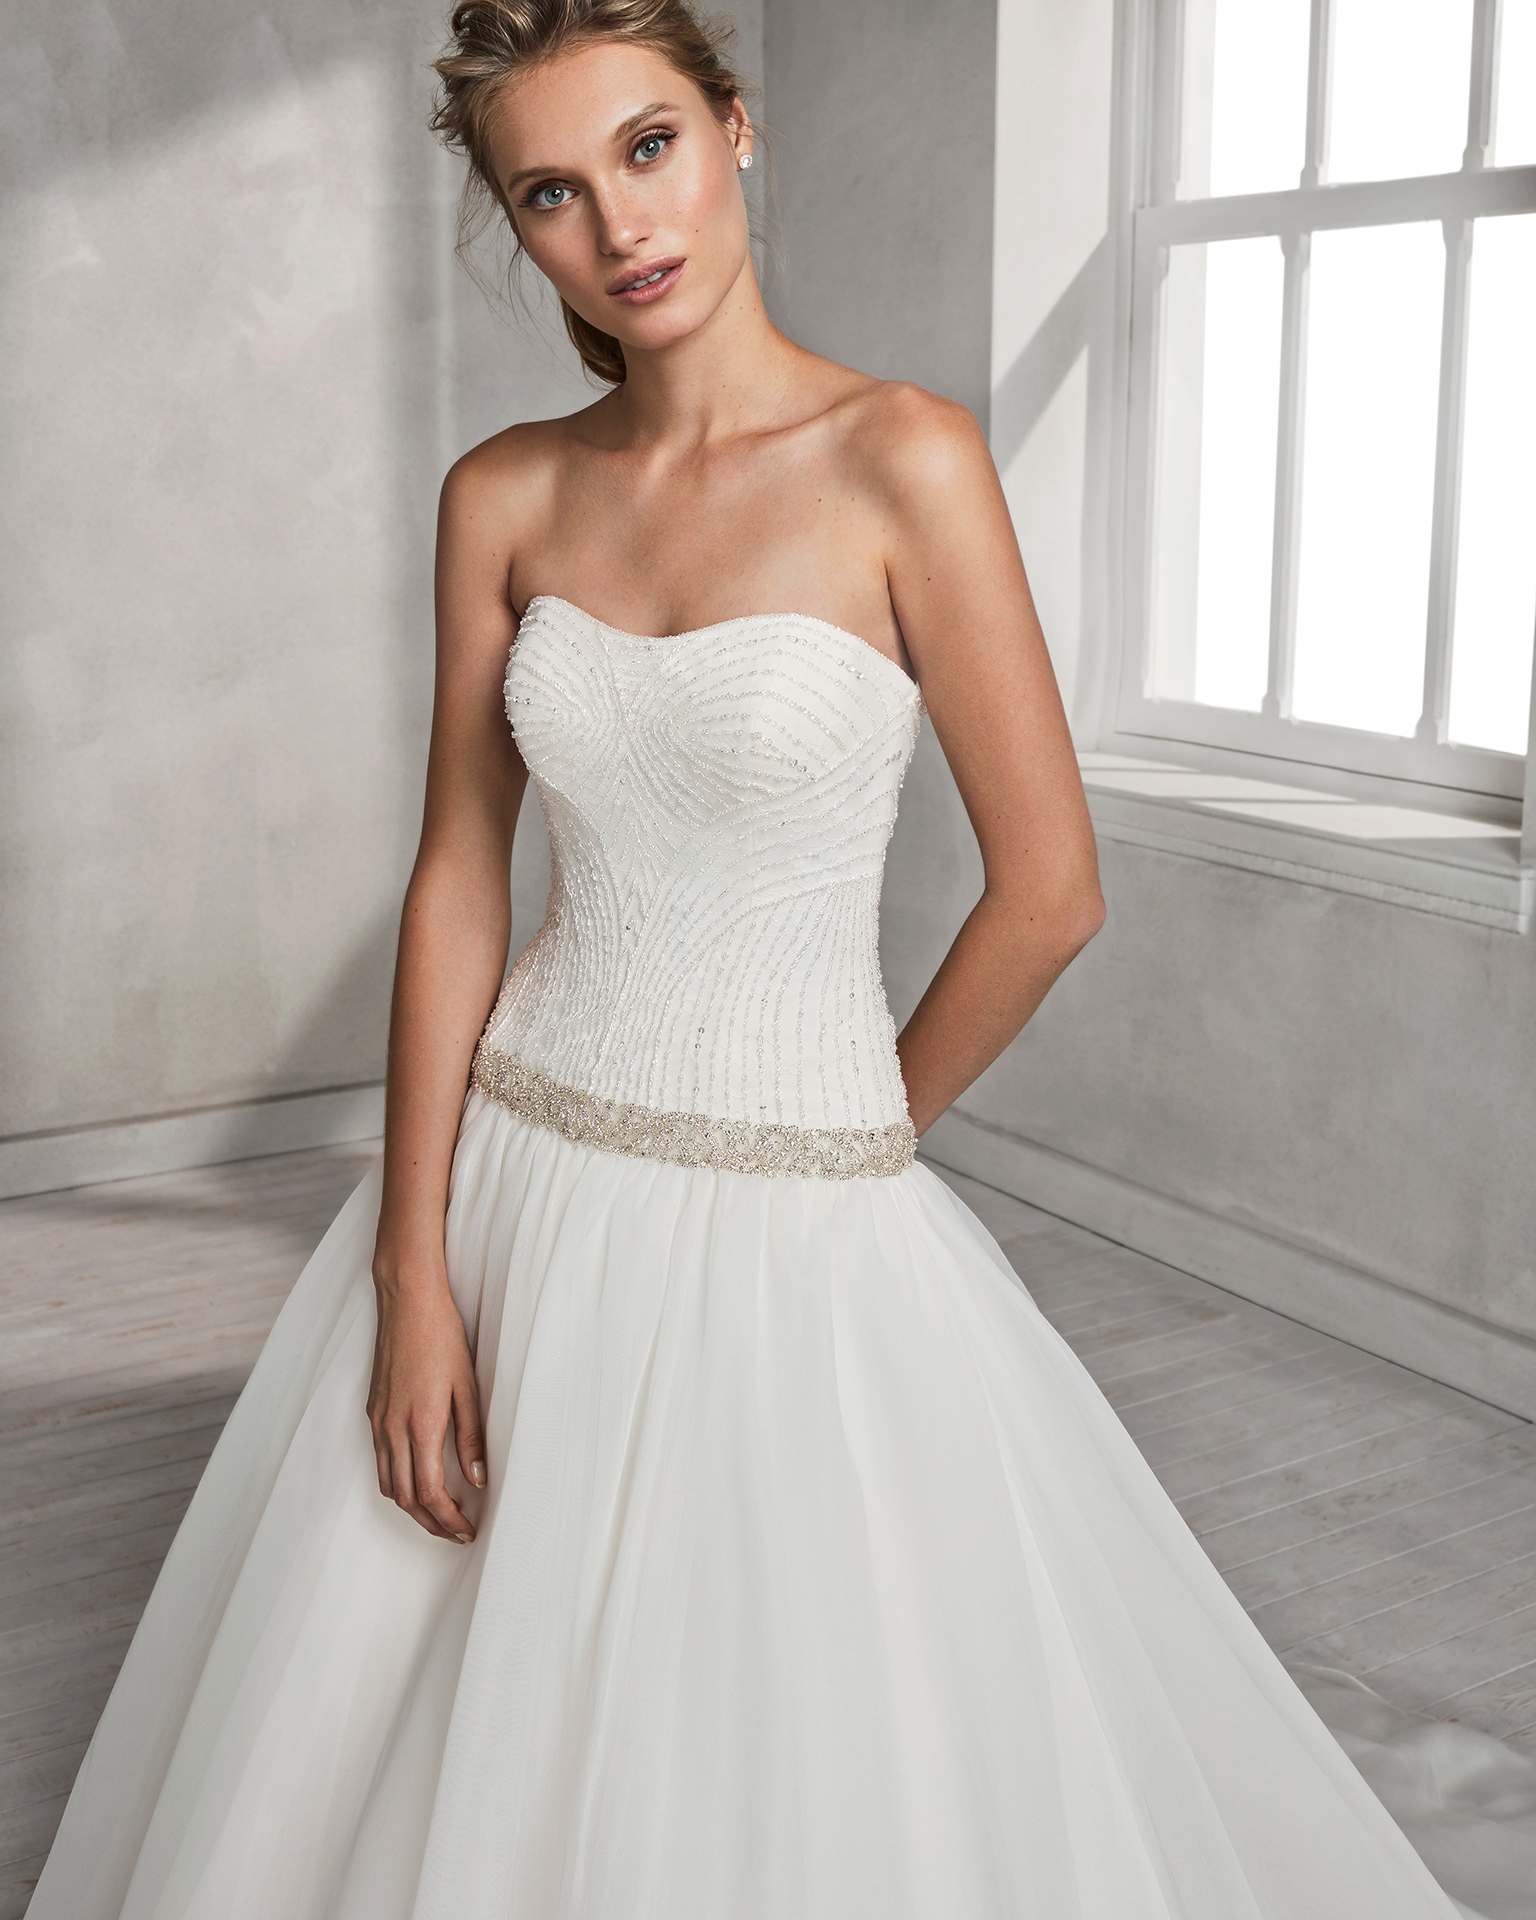 Princess-style beaded embroidered gazar wedding dress with sweetheart neckline and beaded belt.